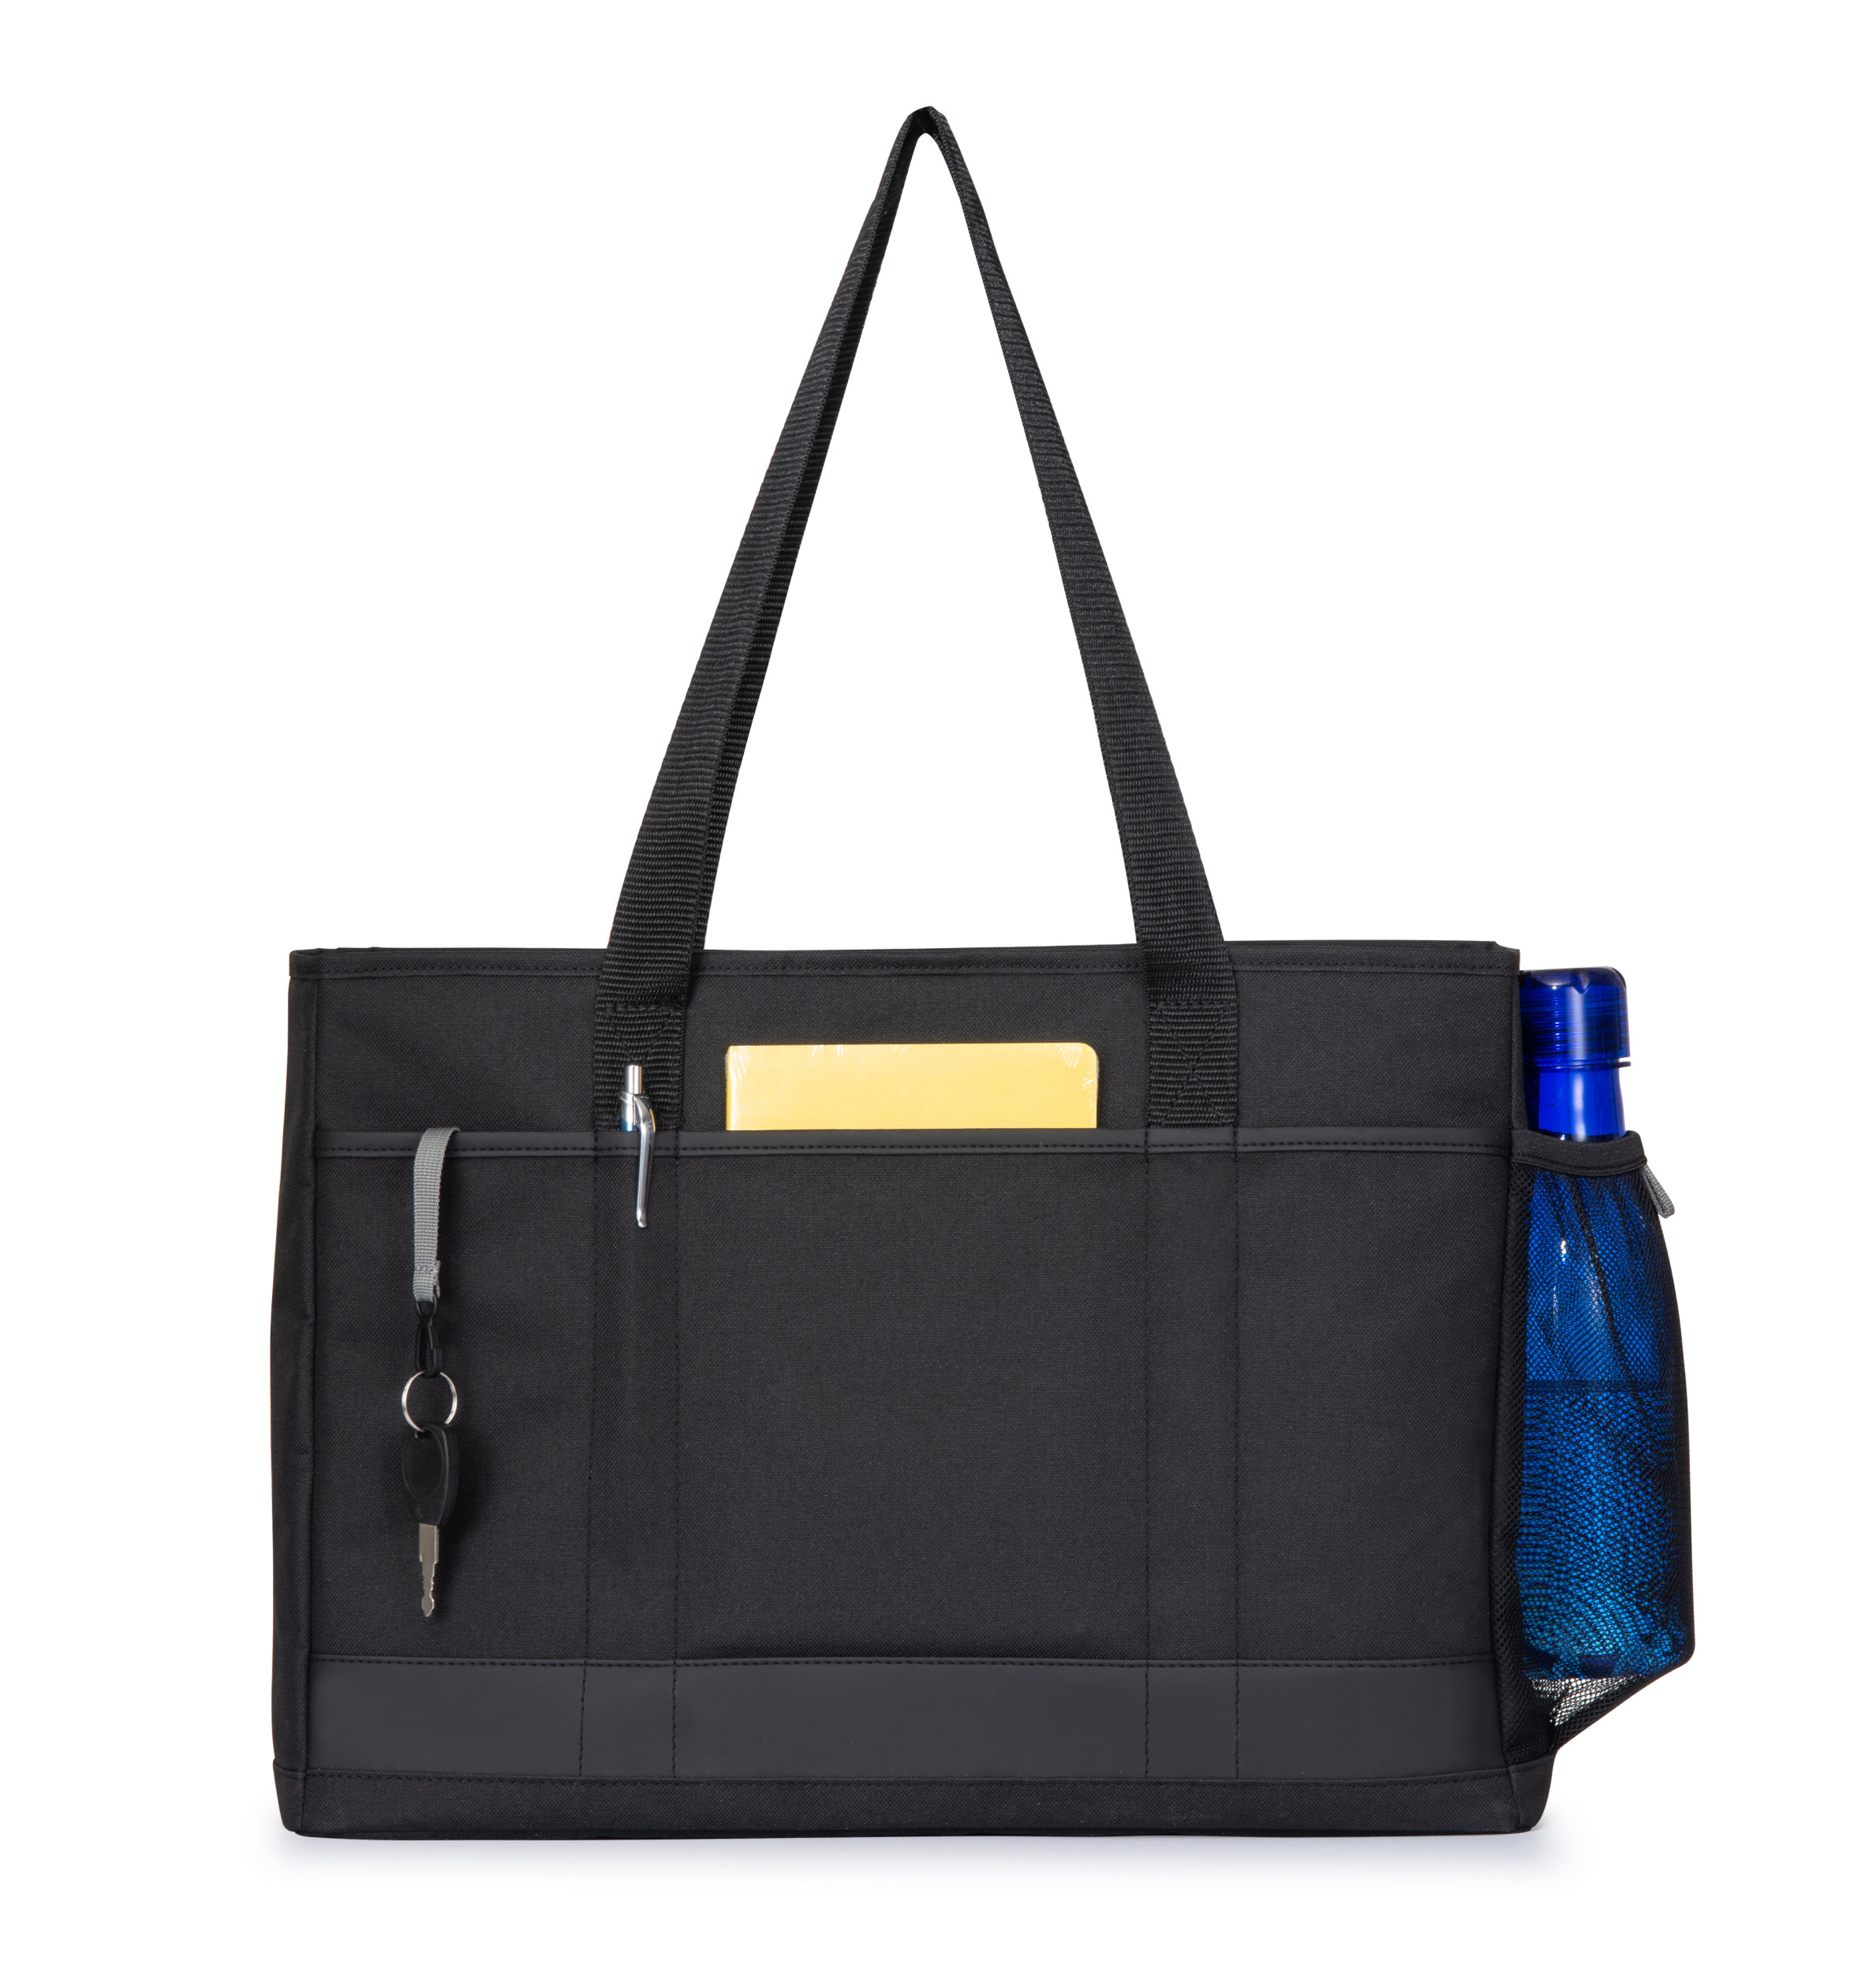 Gemline 100058 - Mobile Office Tote